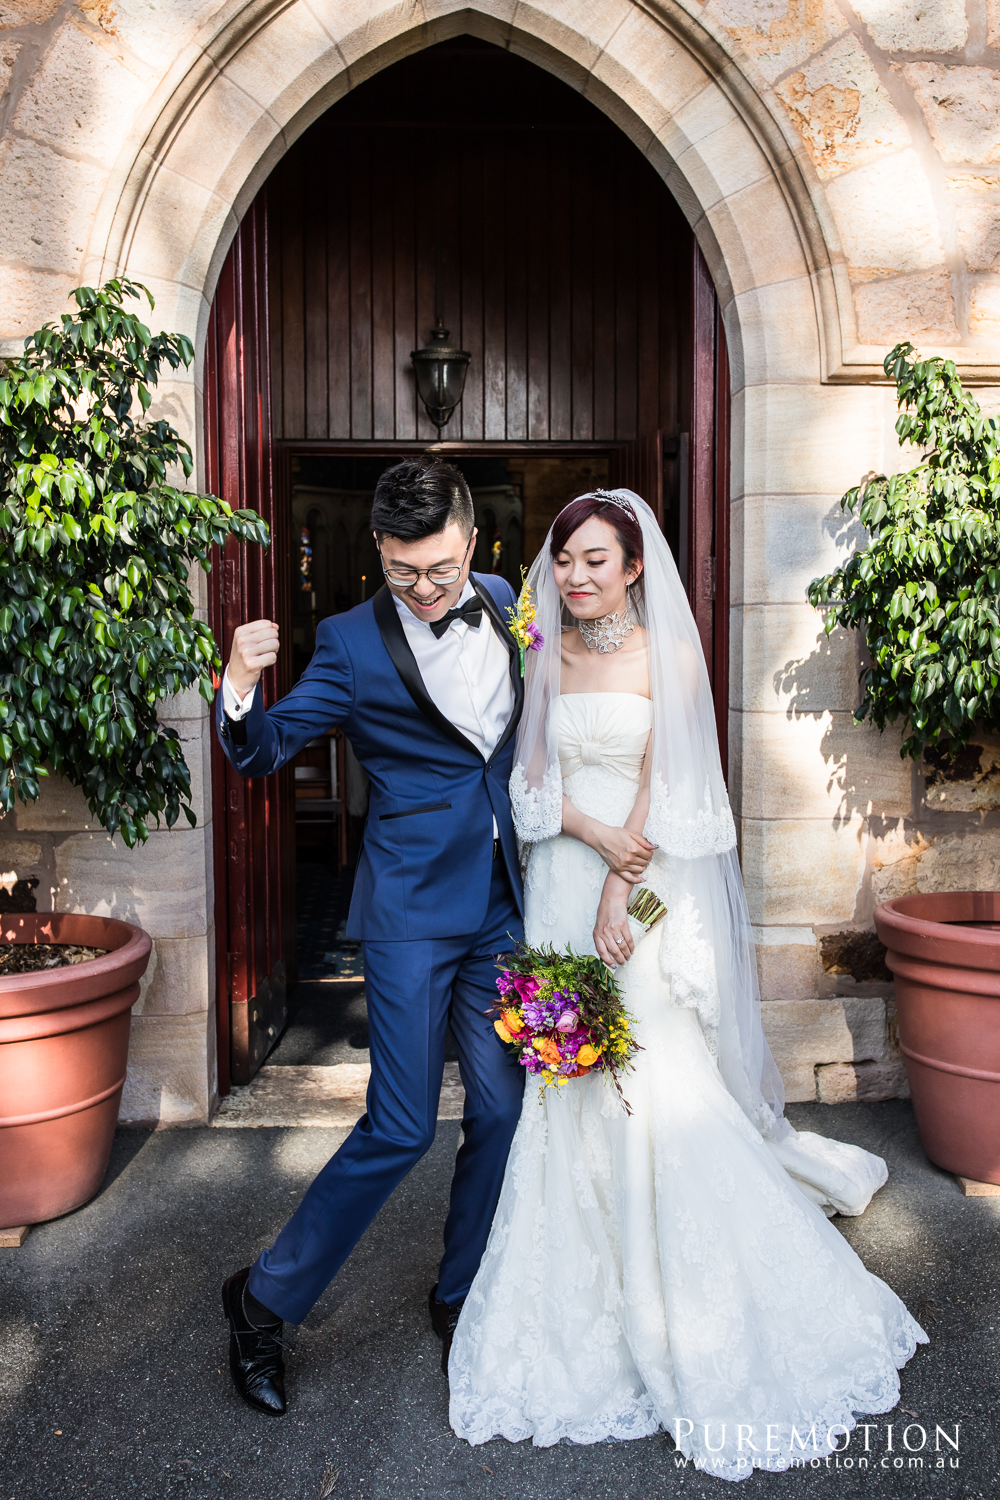 171020 Puremotion Wedding Photography Brisbane Cloudland St. Mary JolinJacky-0048